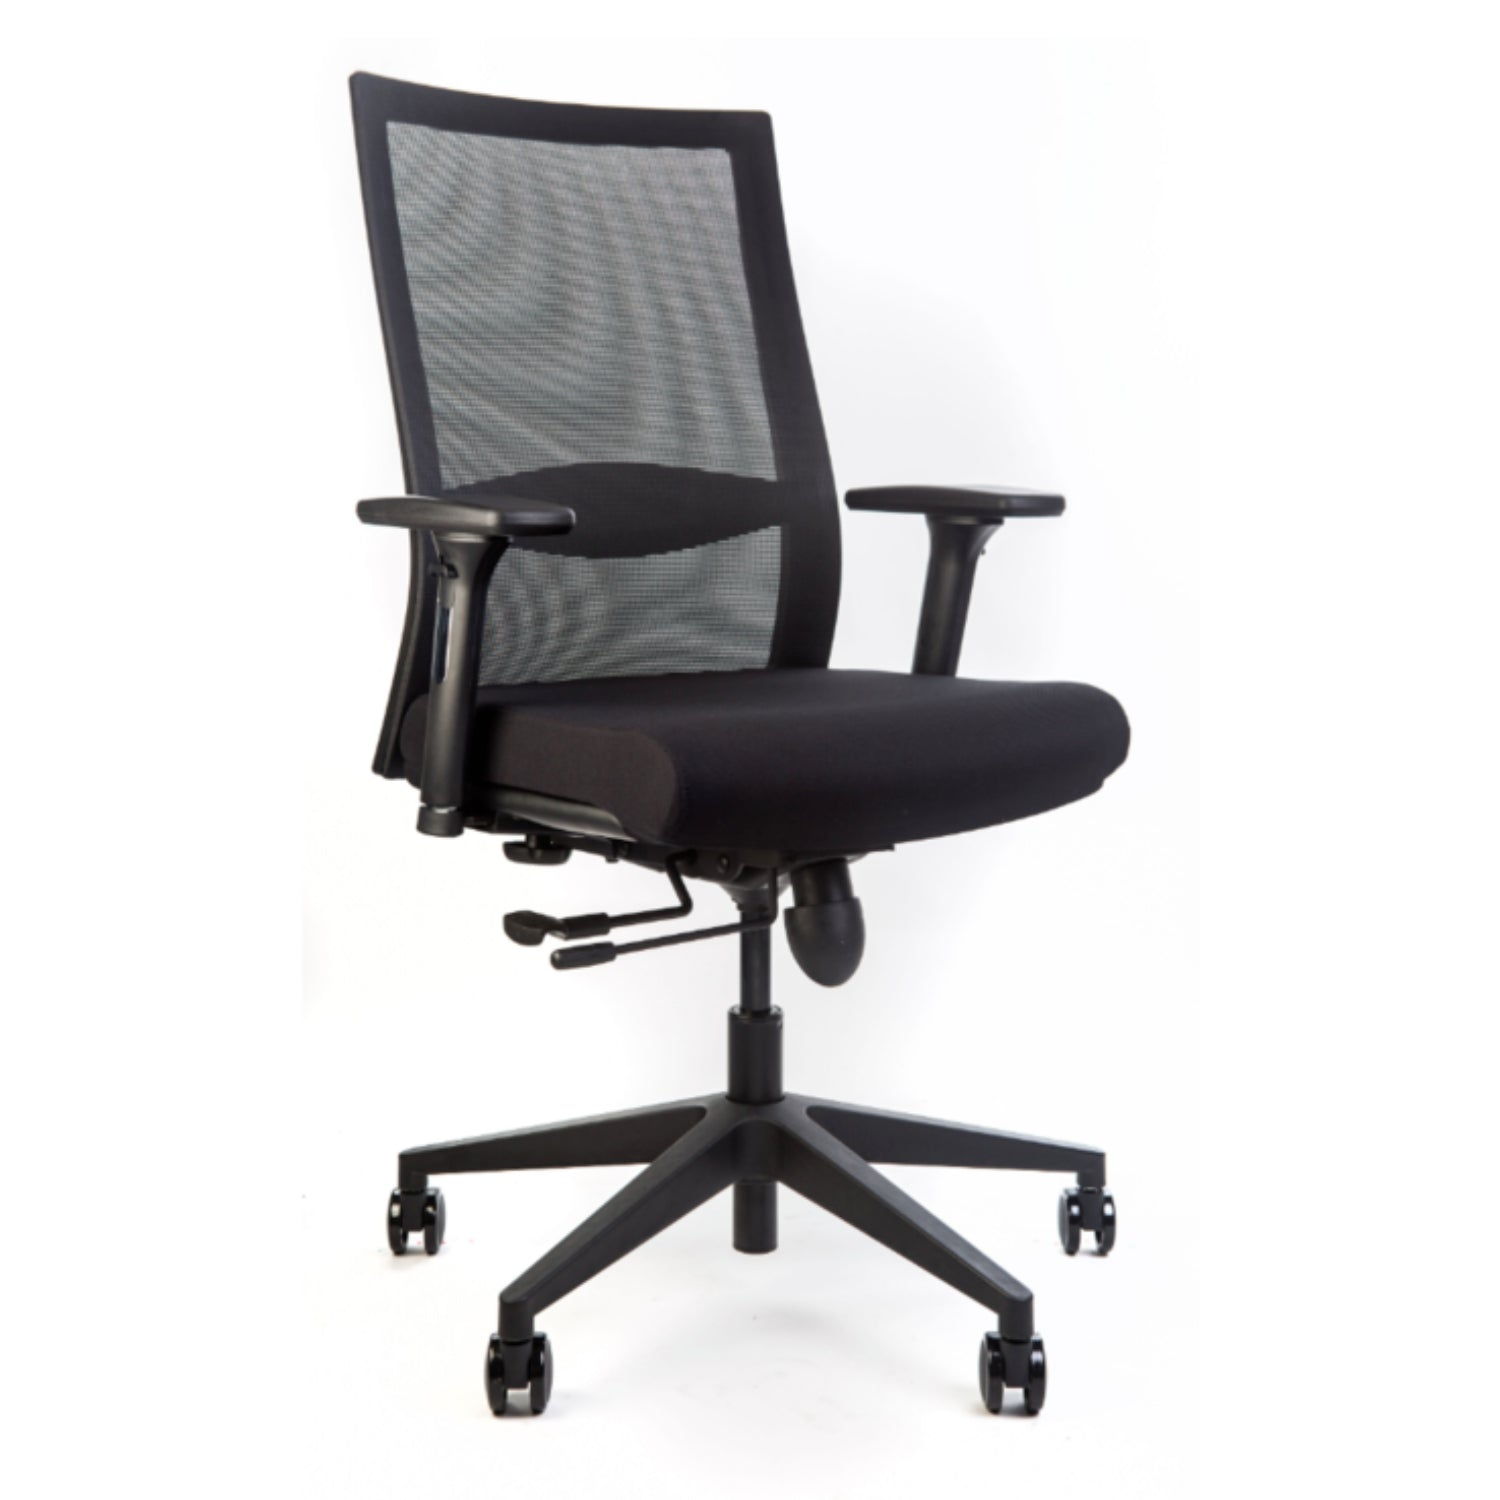 Element - S1 Ergonomic Task Chair *BACKORDERD - Duckys Office Furniture